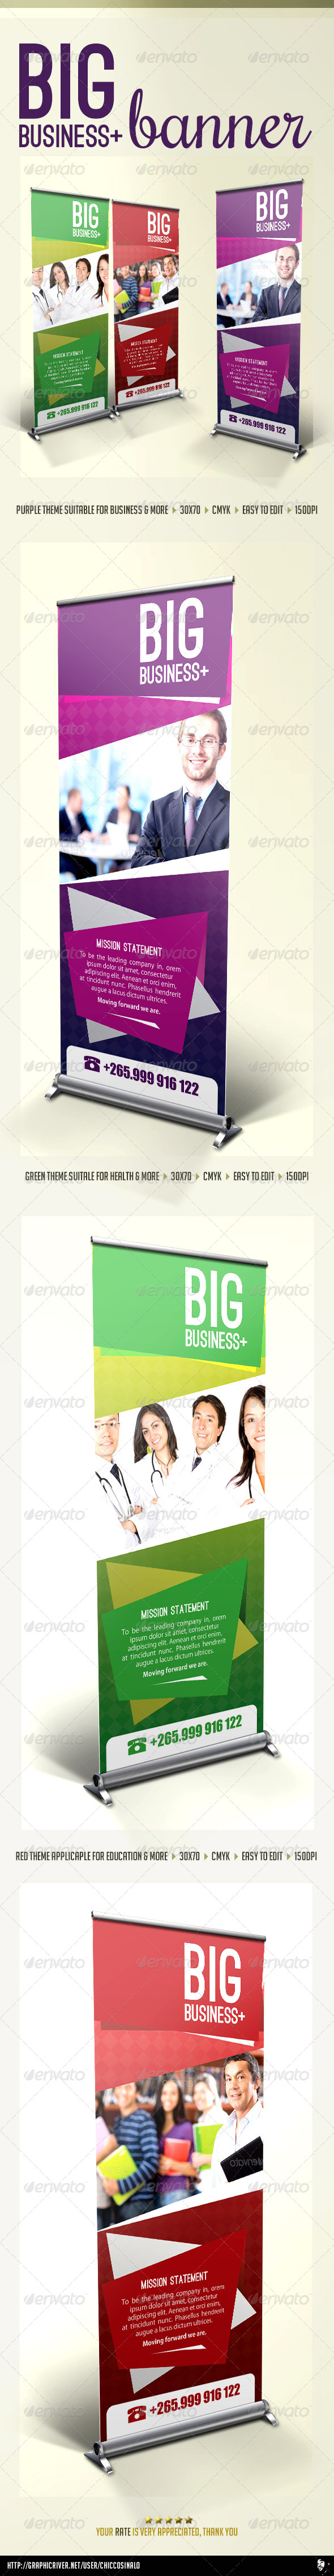 Big business banner template by chiccosinalo graphicriver big business banner template wajeb